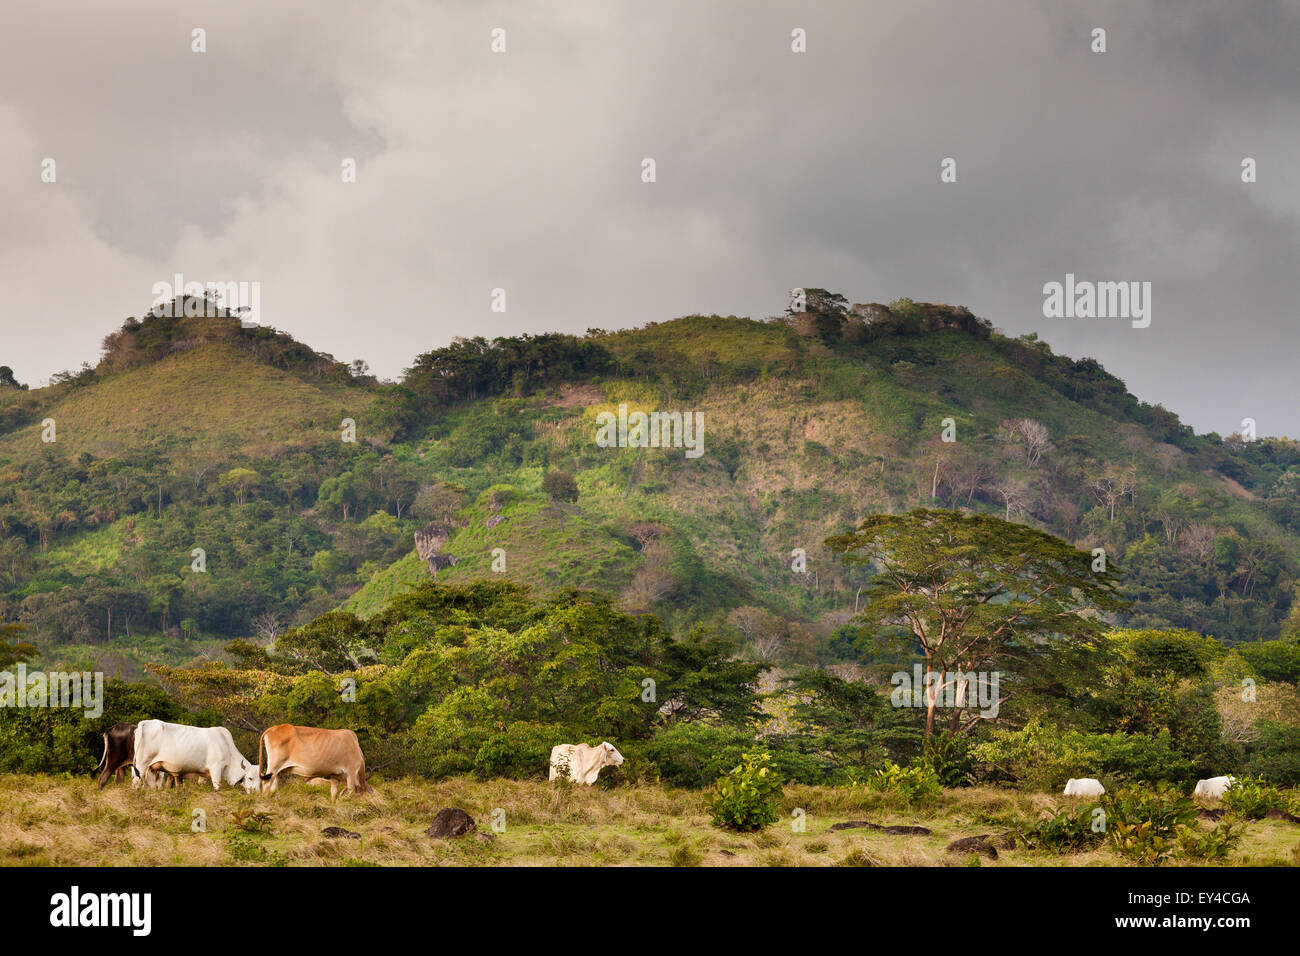 Cattle in the farmlands near La Pintada in the Cocle province, Republic of Panama. - Stock Image